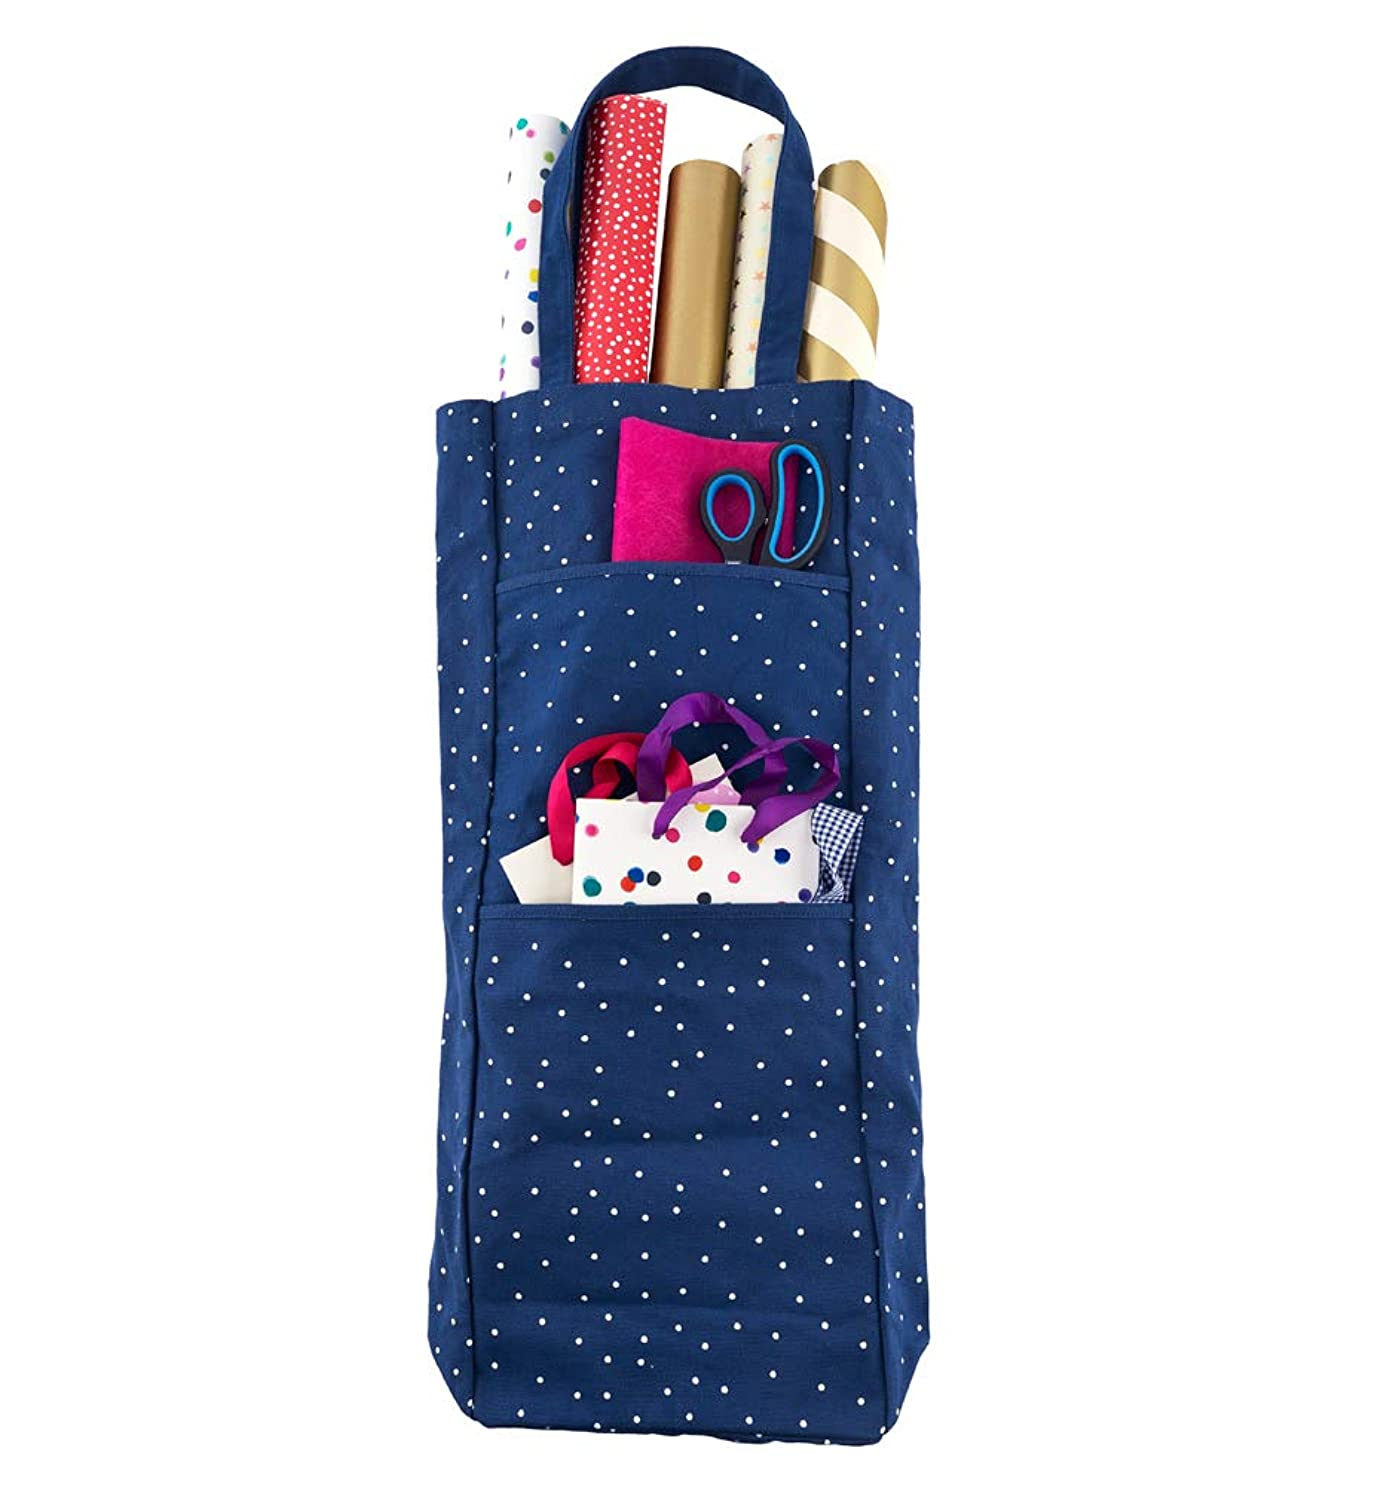 Busy B 8823 Gift Wrap Storage Bag - Store up to 10 Rolls of Wrapping Paper